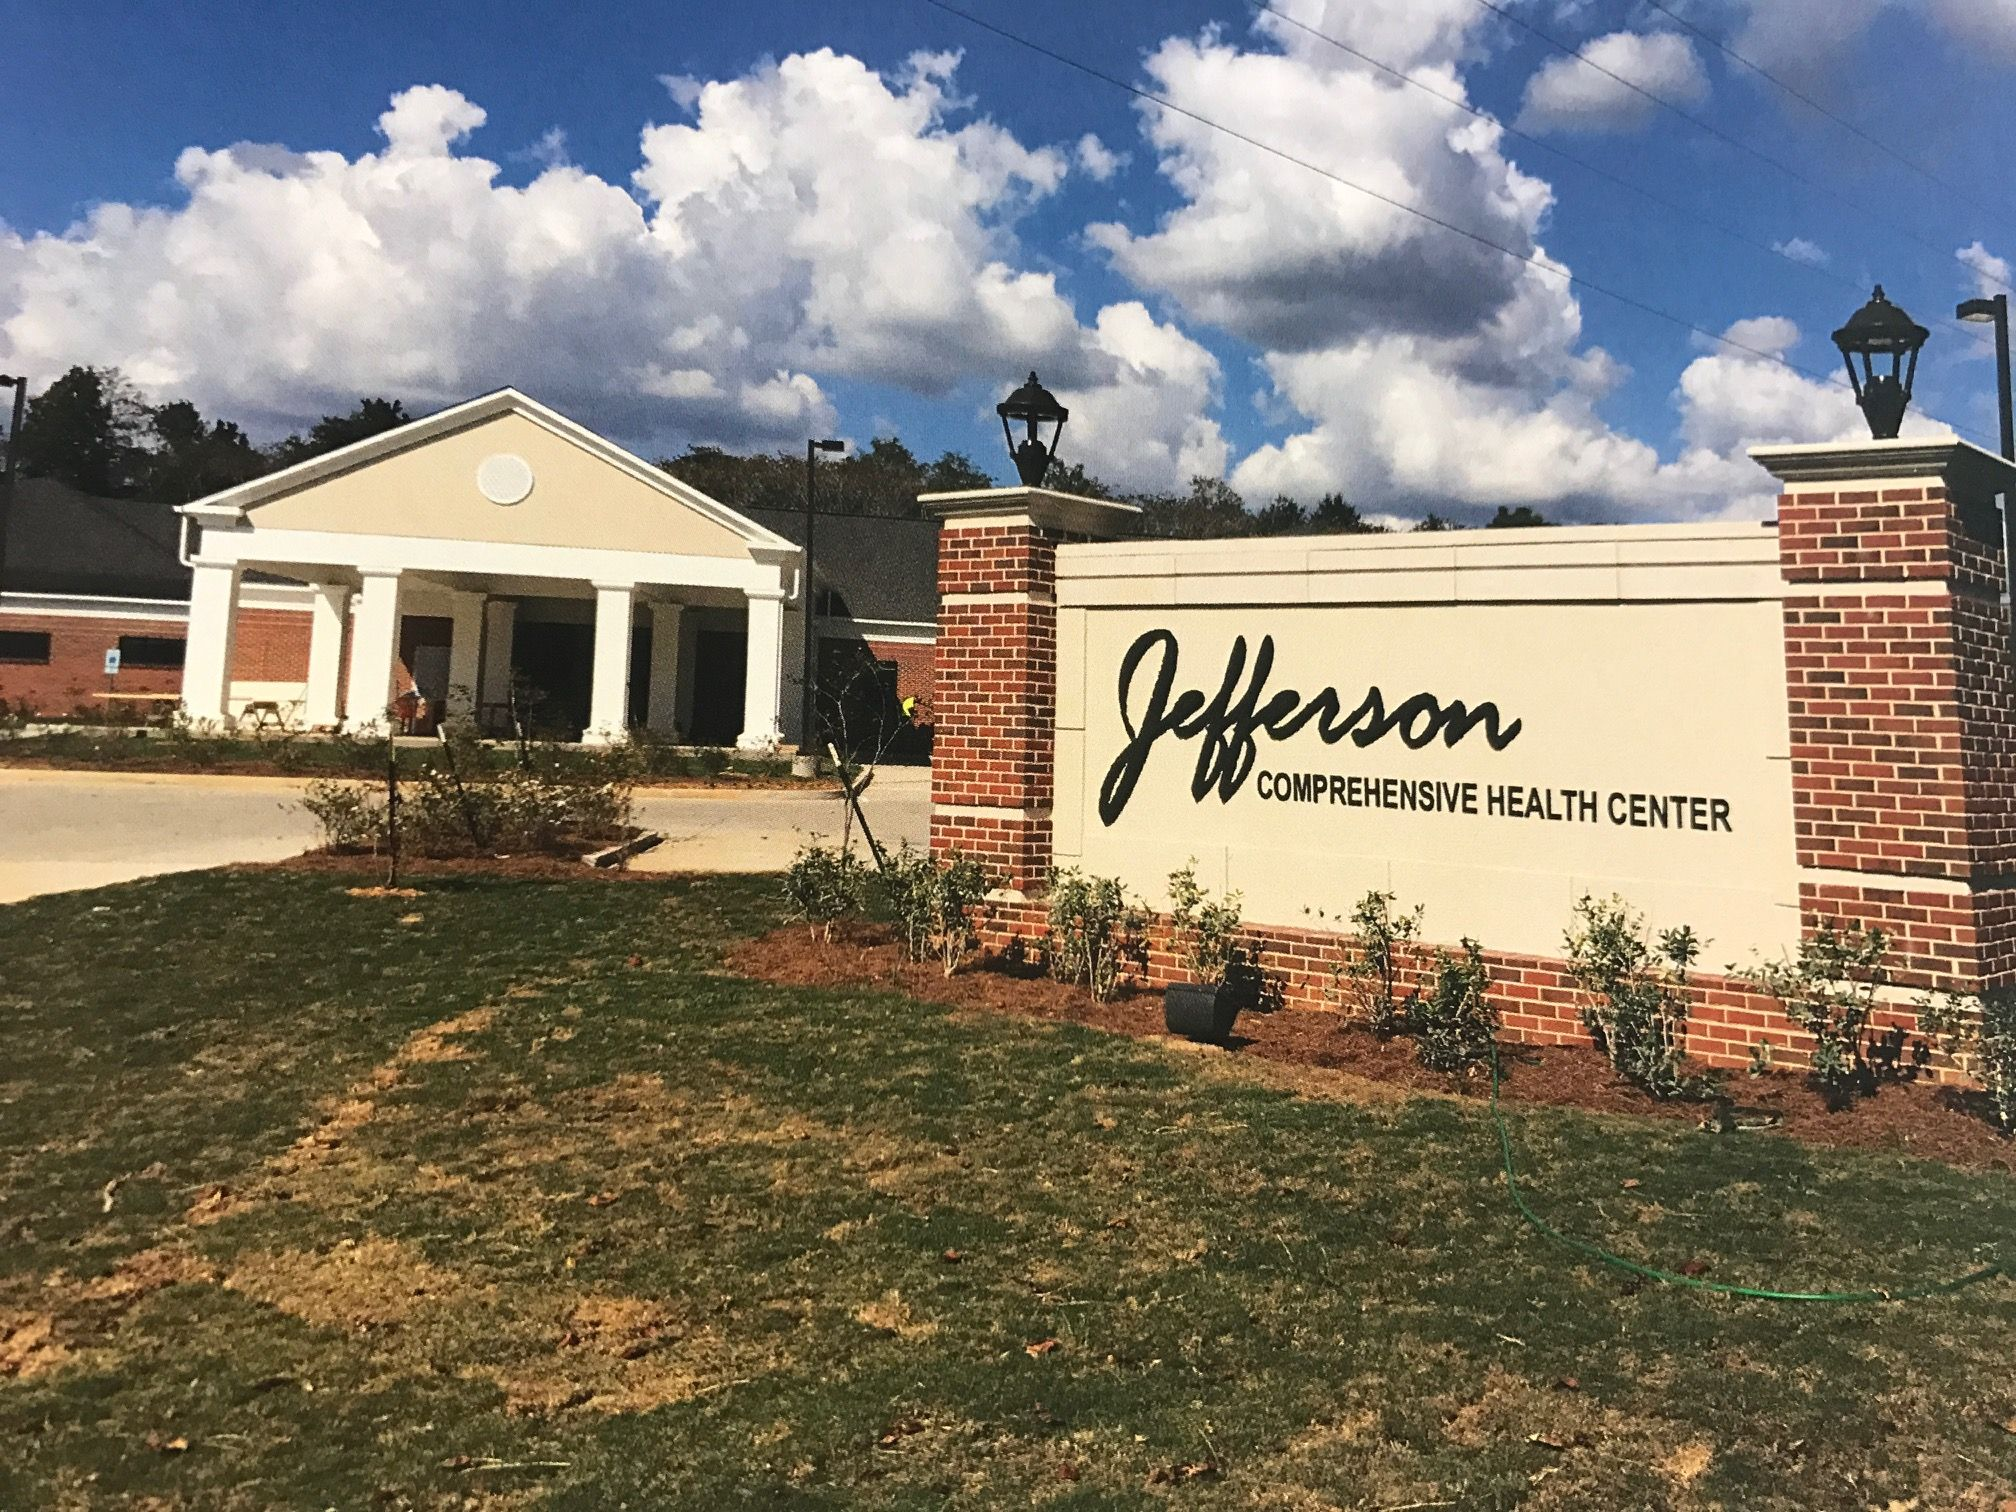 Jefferson Comprehensive Health, Ctr., Inc.